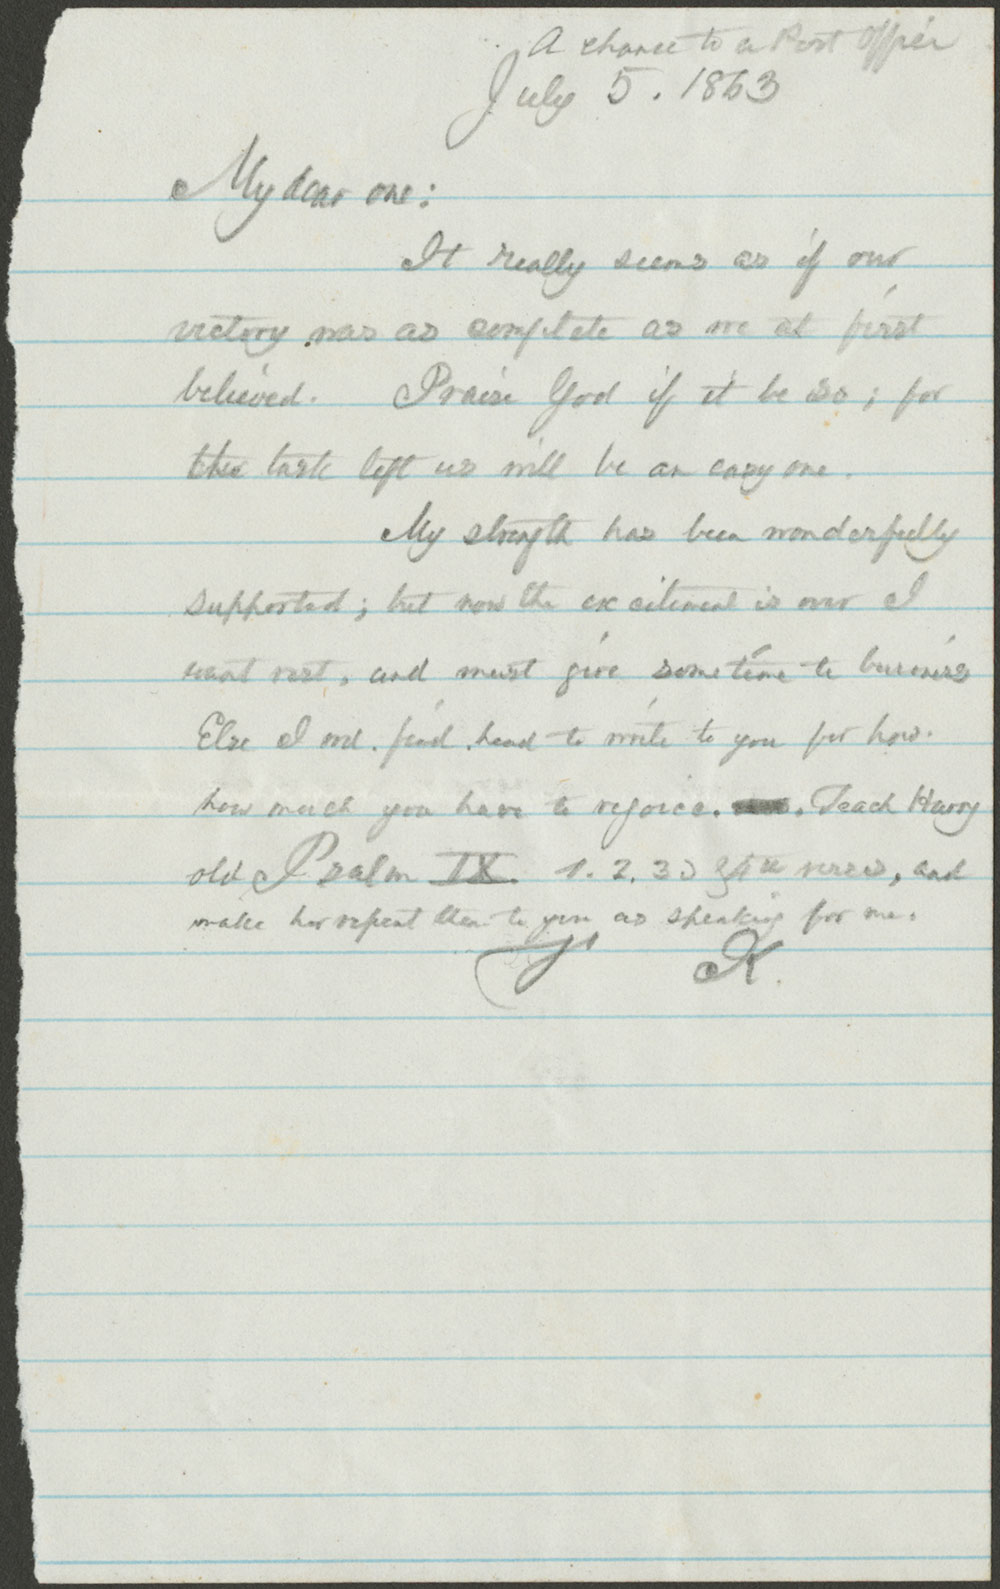 Thomas L. Kane to Elizabeth Kane. 5 July, 1863 (Vault MSS 792, Box 22, Folder 2, Item 78)